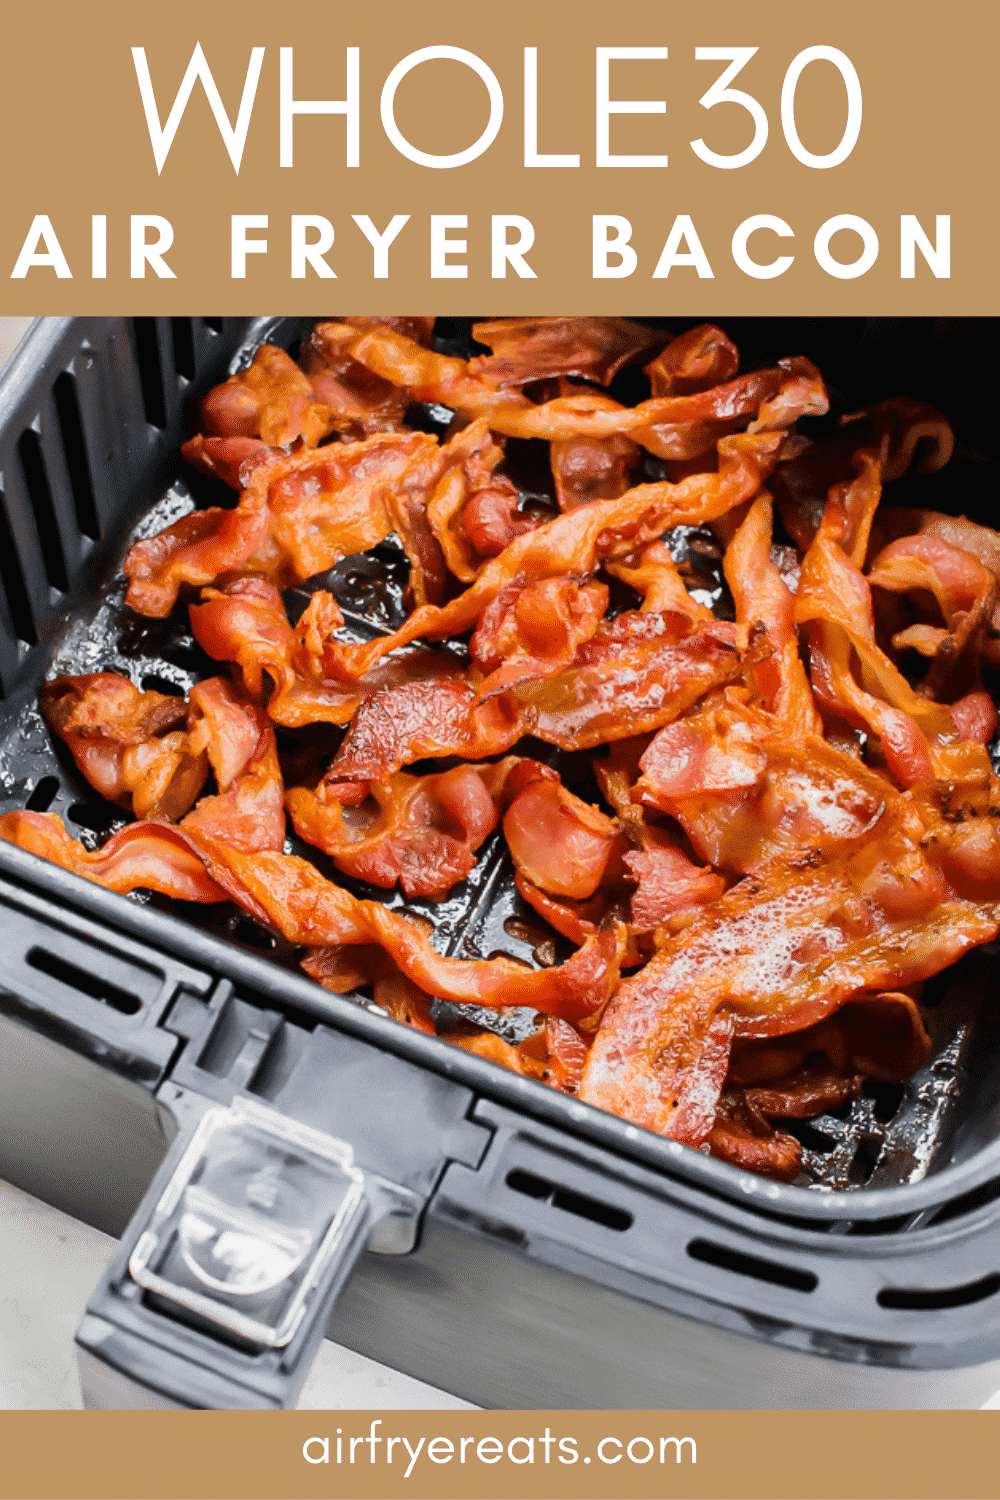 Air Fryer Bacon is a quick and easy recipe for the best crispy bacon! Once you cook bacon in your air fryer, you'll never go back to the old way again! #bacon #airfryer #airfryerbacon #crispybacon via @vegetarianmamma